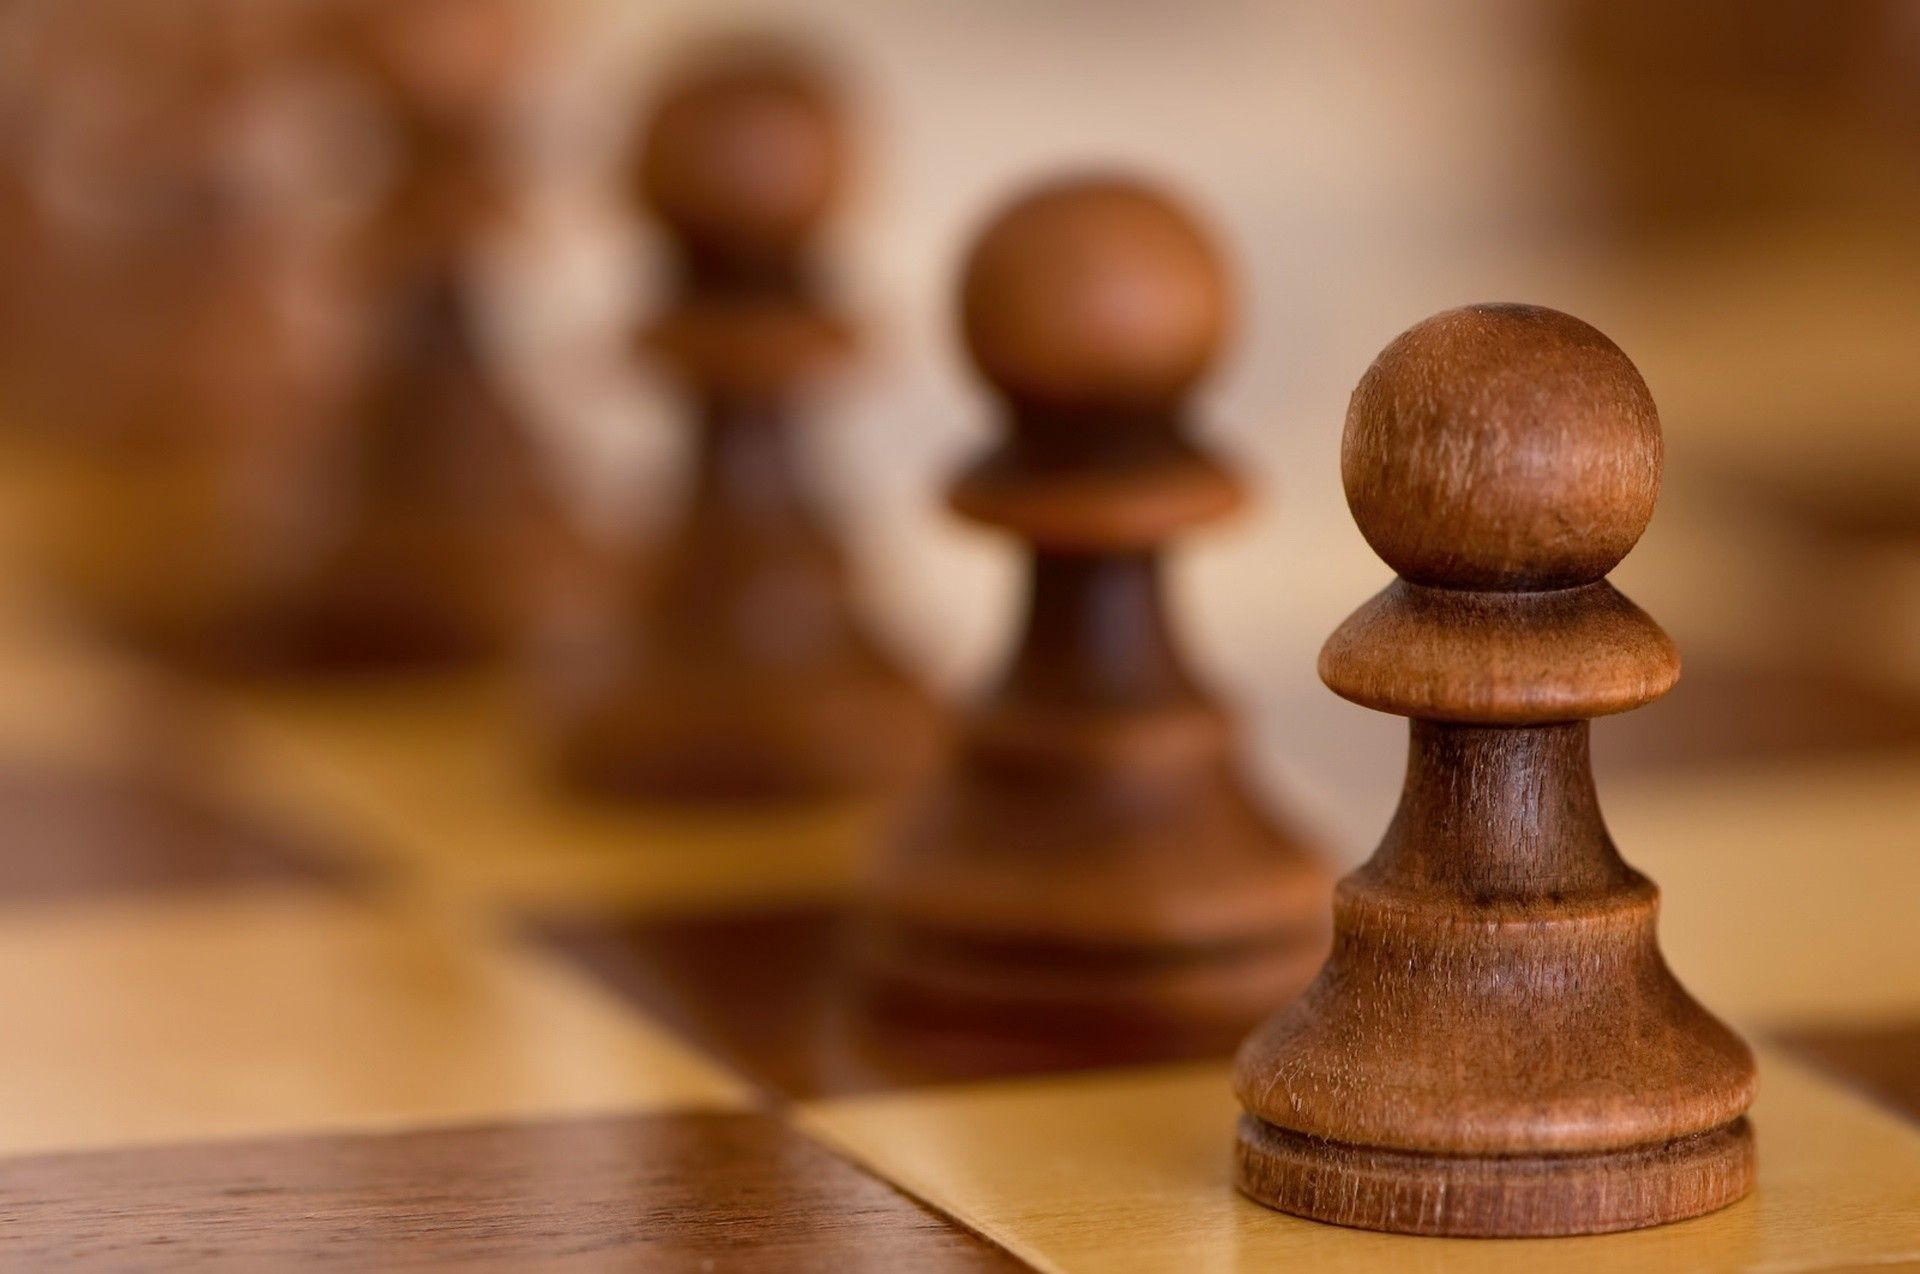 View Creative Chess Wallpaper Hd Pictures